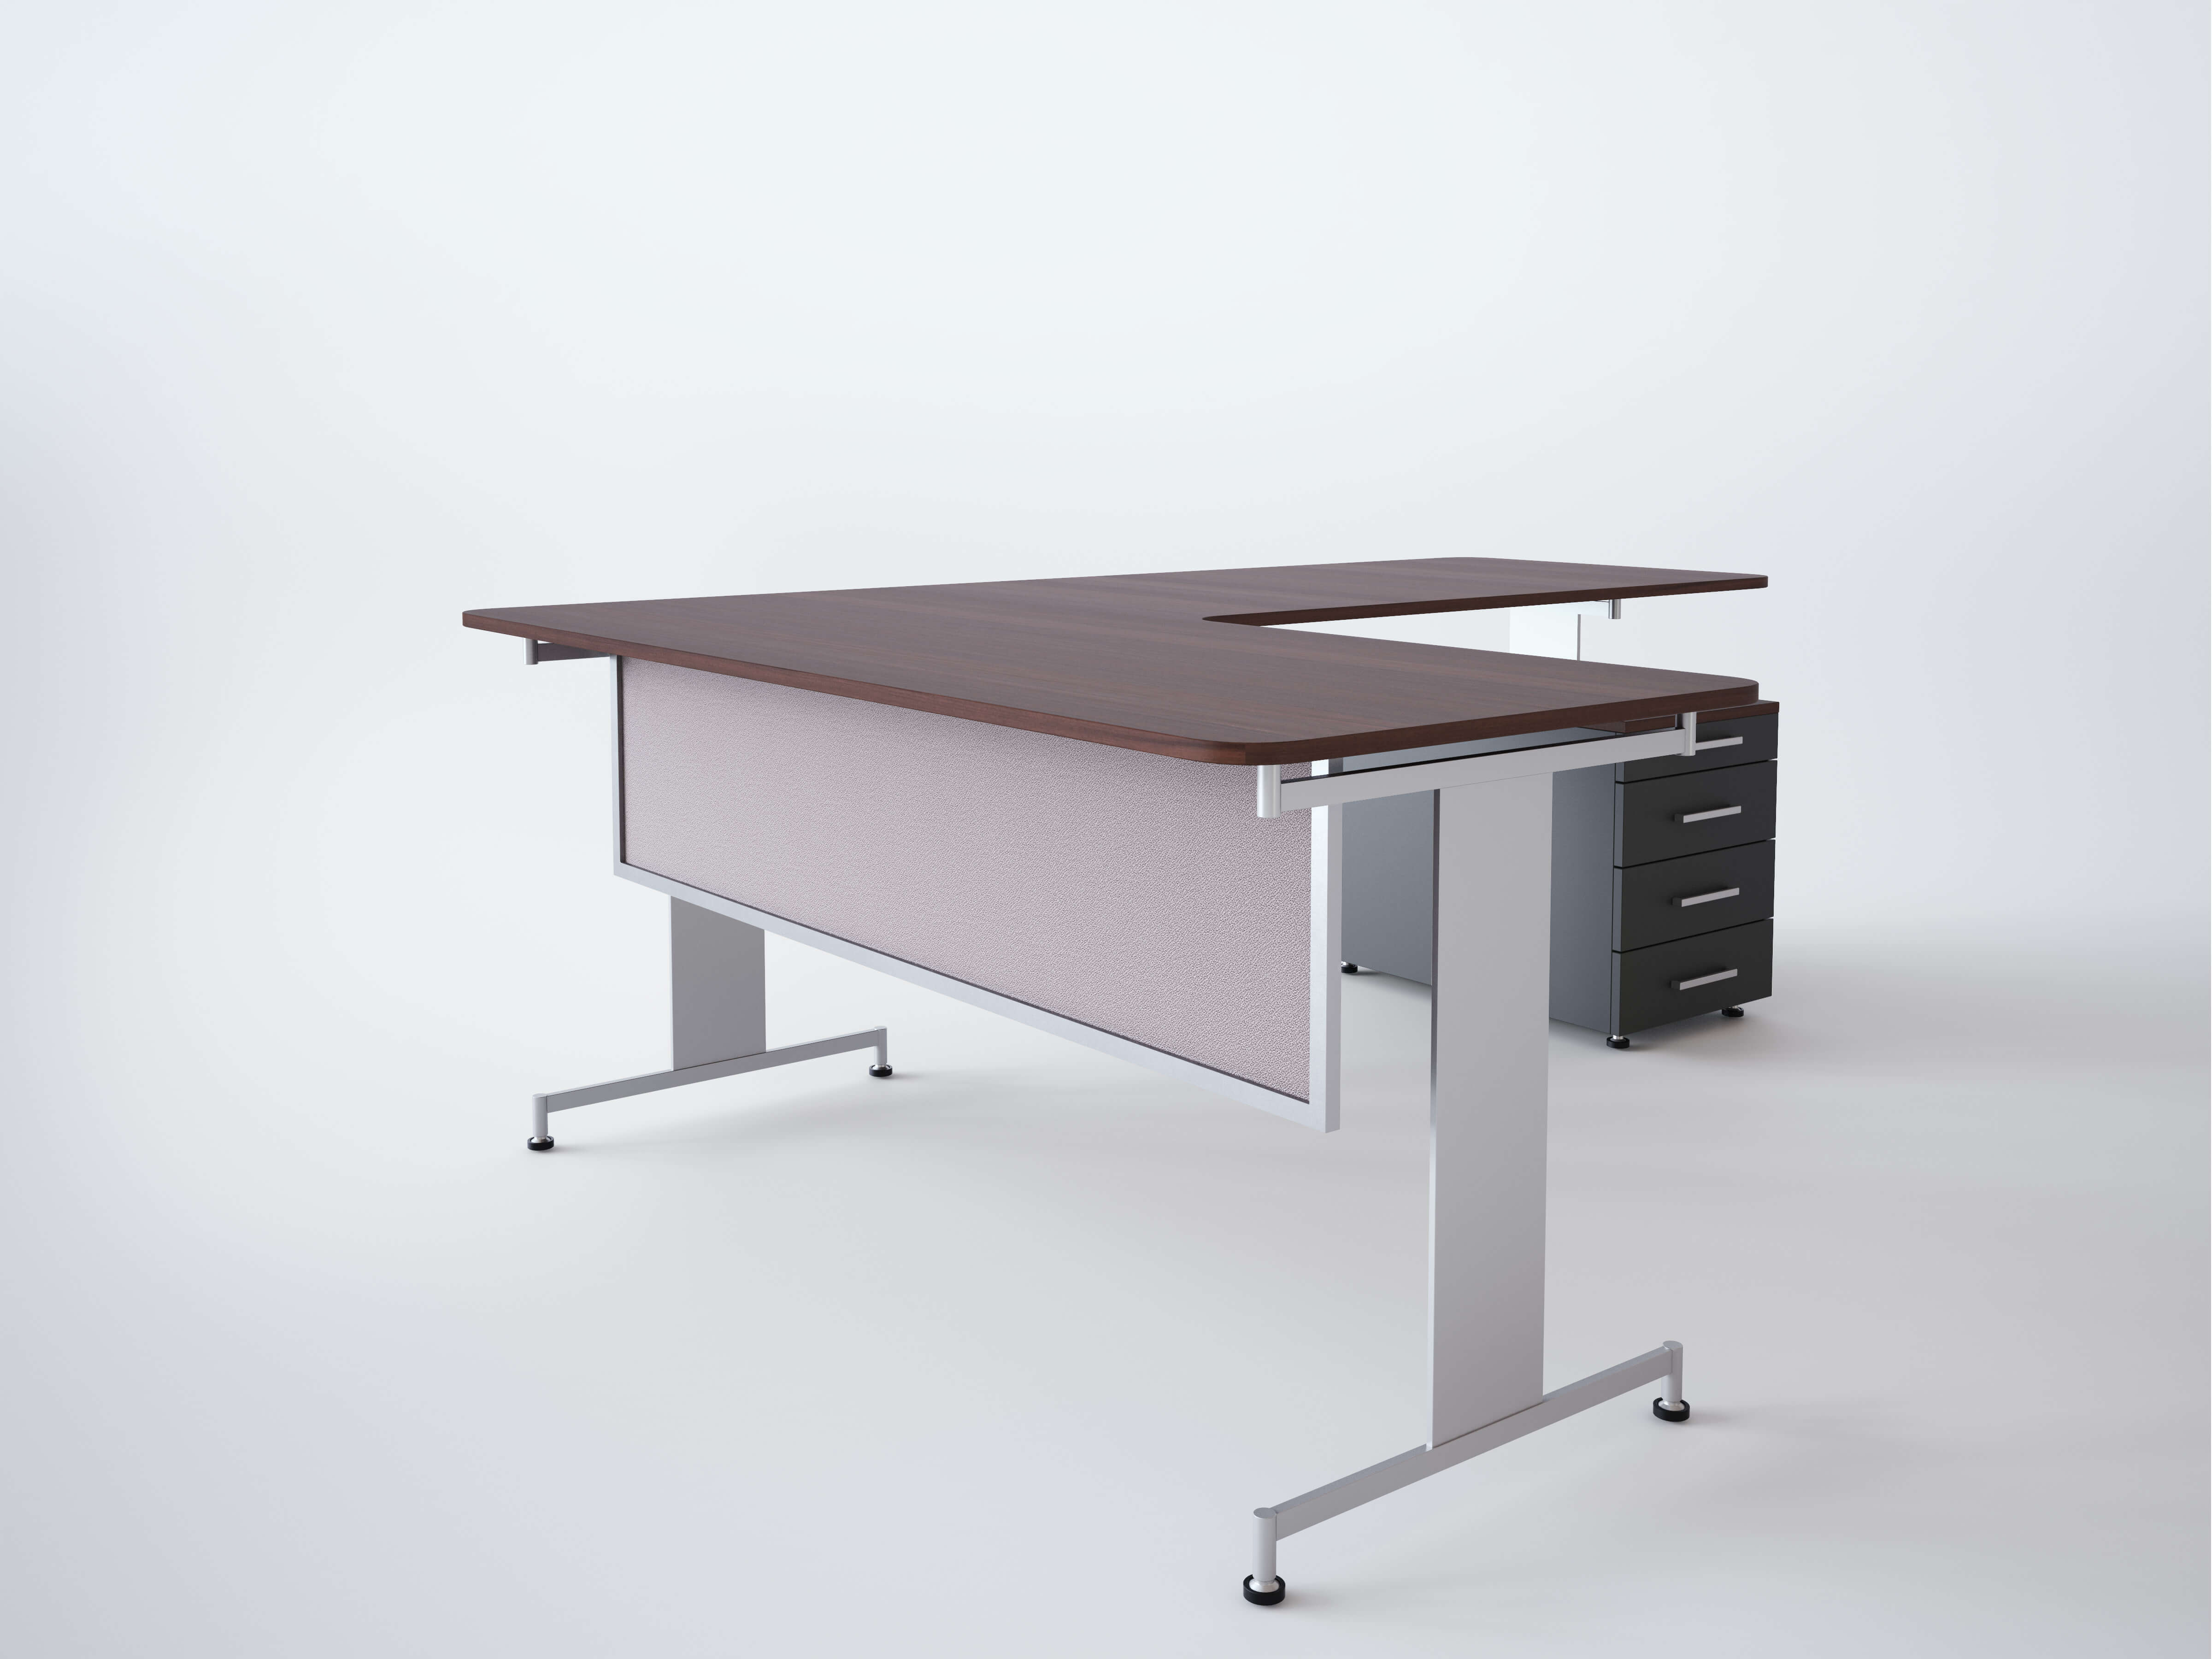 Desk Amp Table Mounted Modesty Panels Obex Panel Extenders